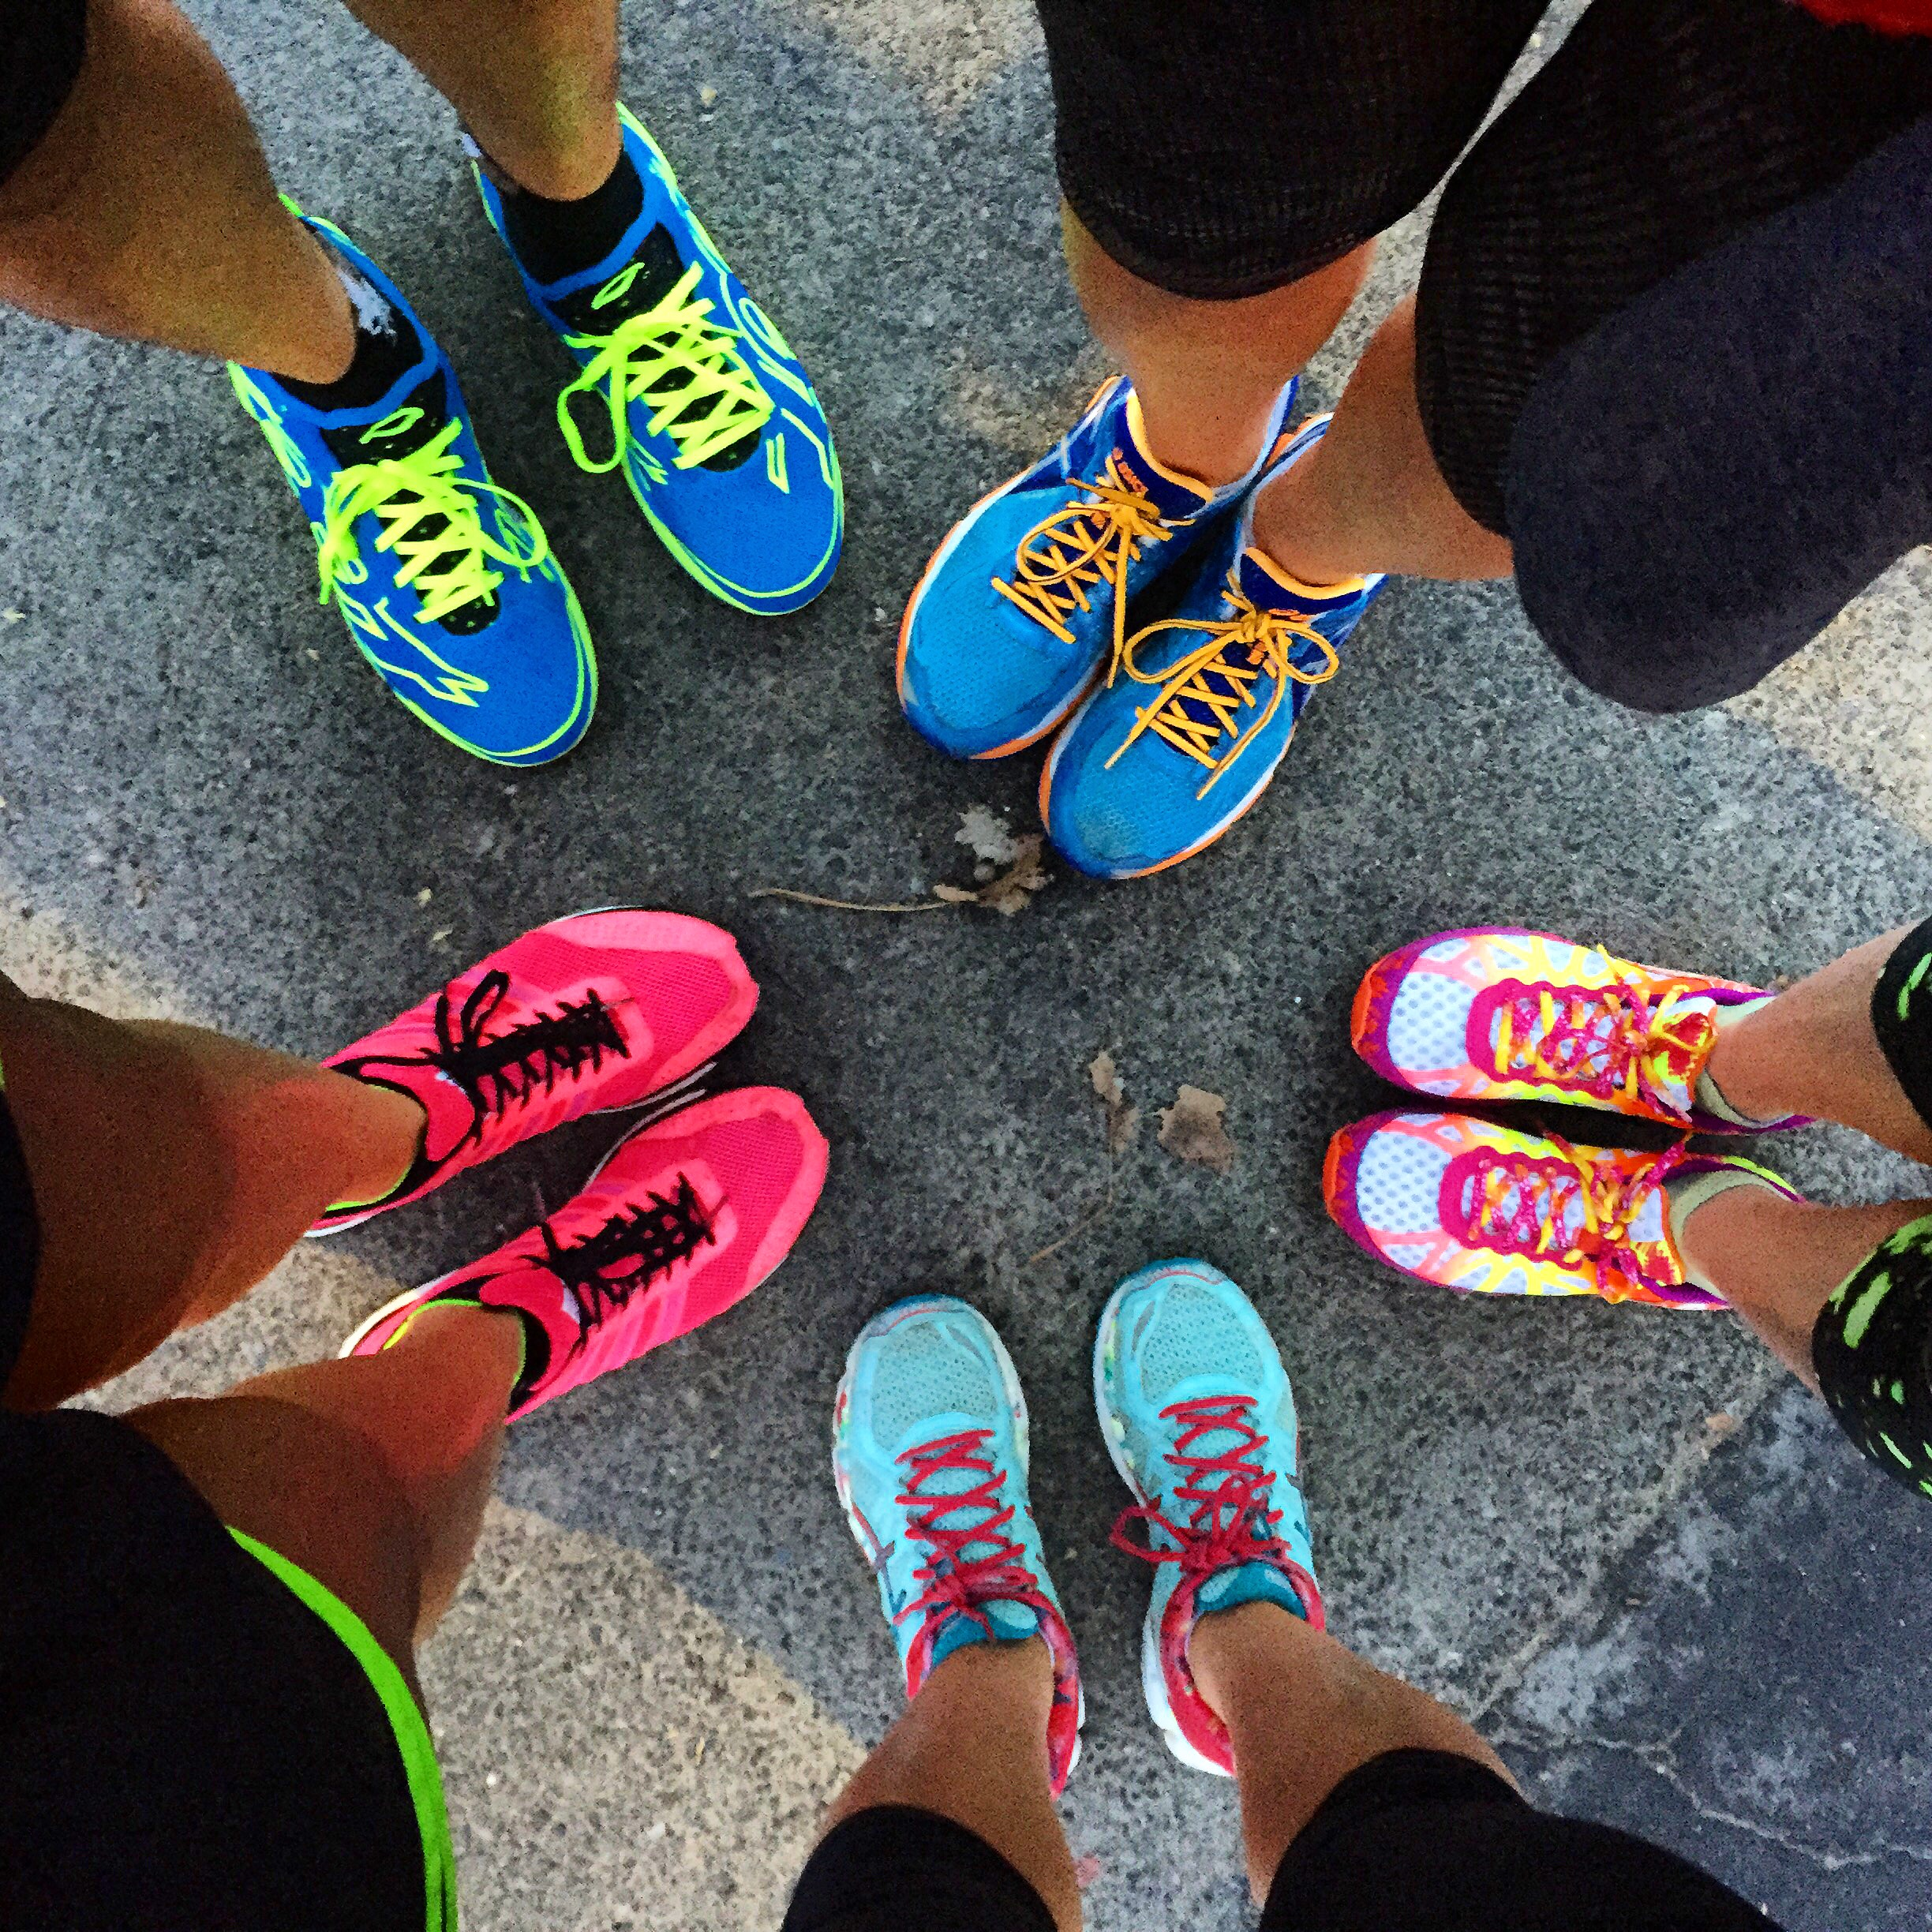 Post 5K sneaker shot with my teammates! 6am runs are much easier with friends.